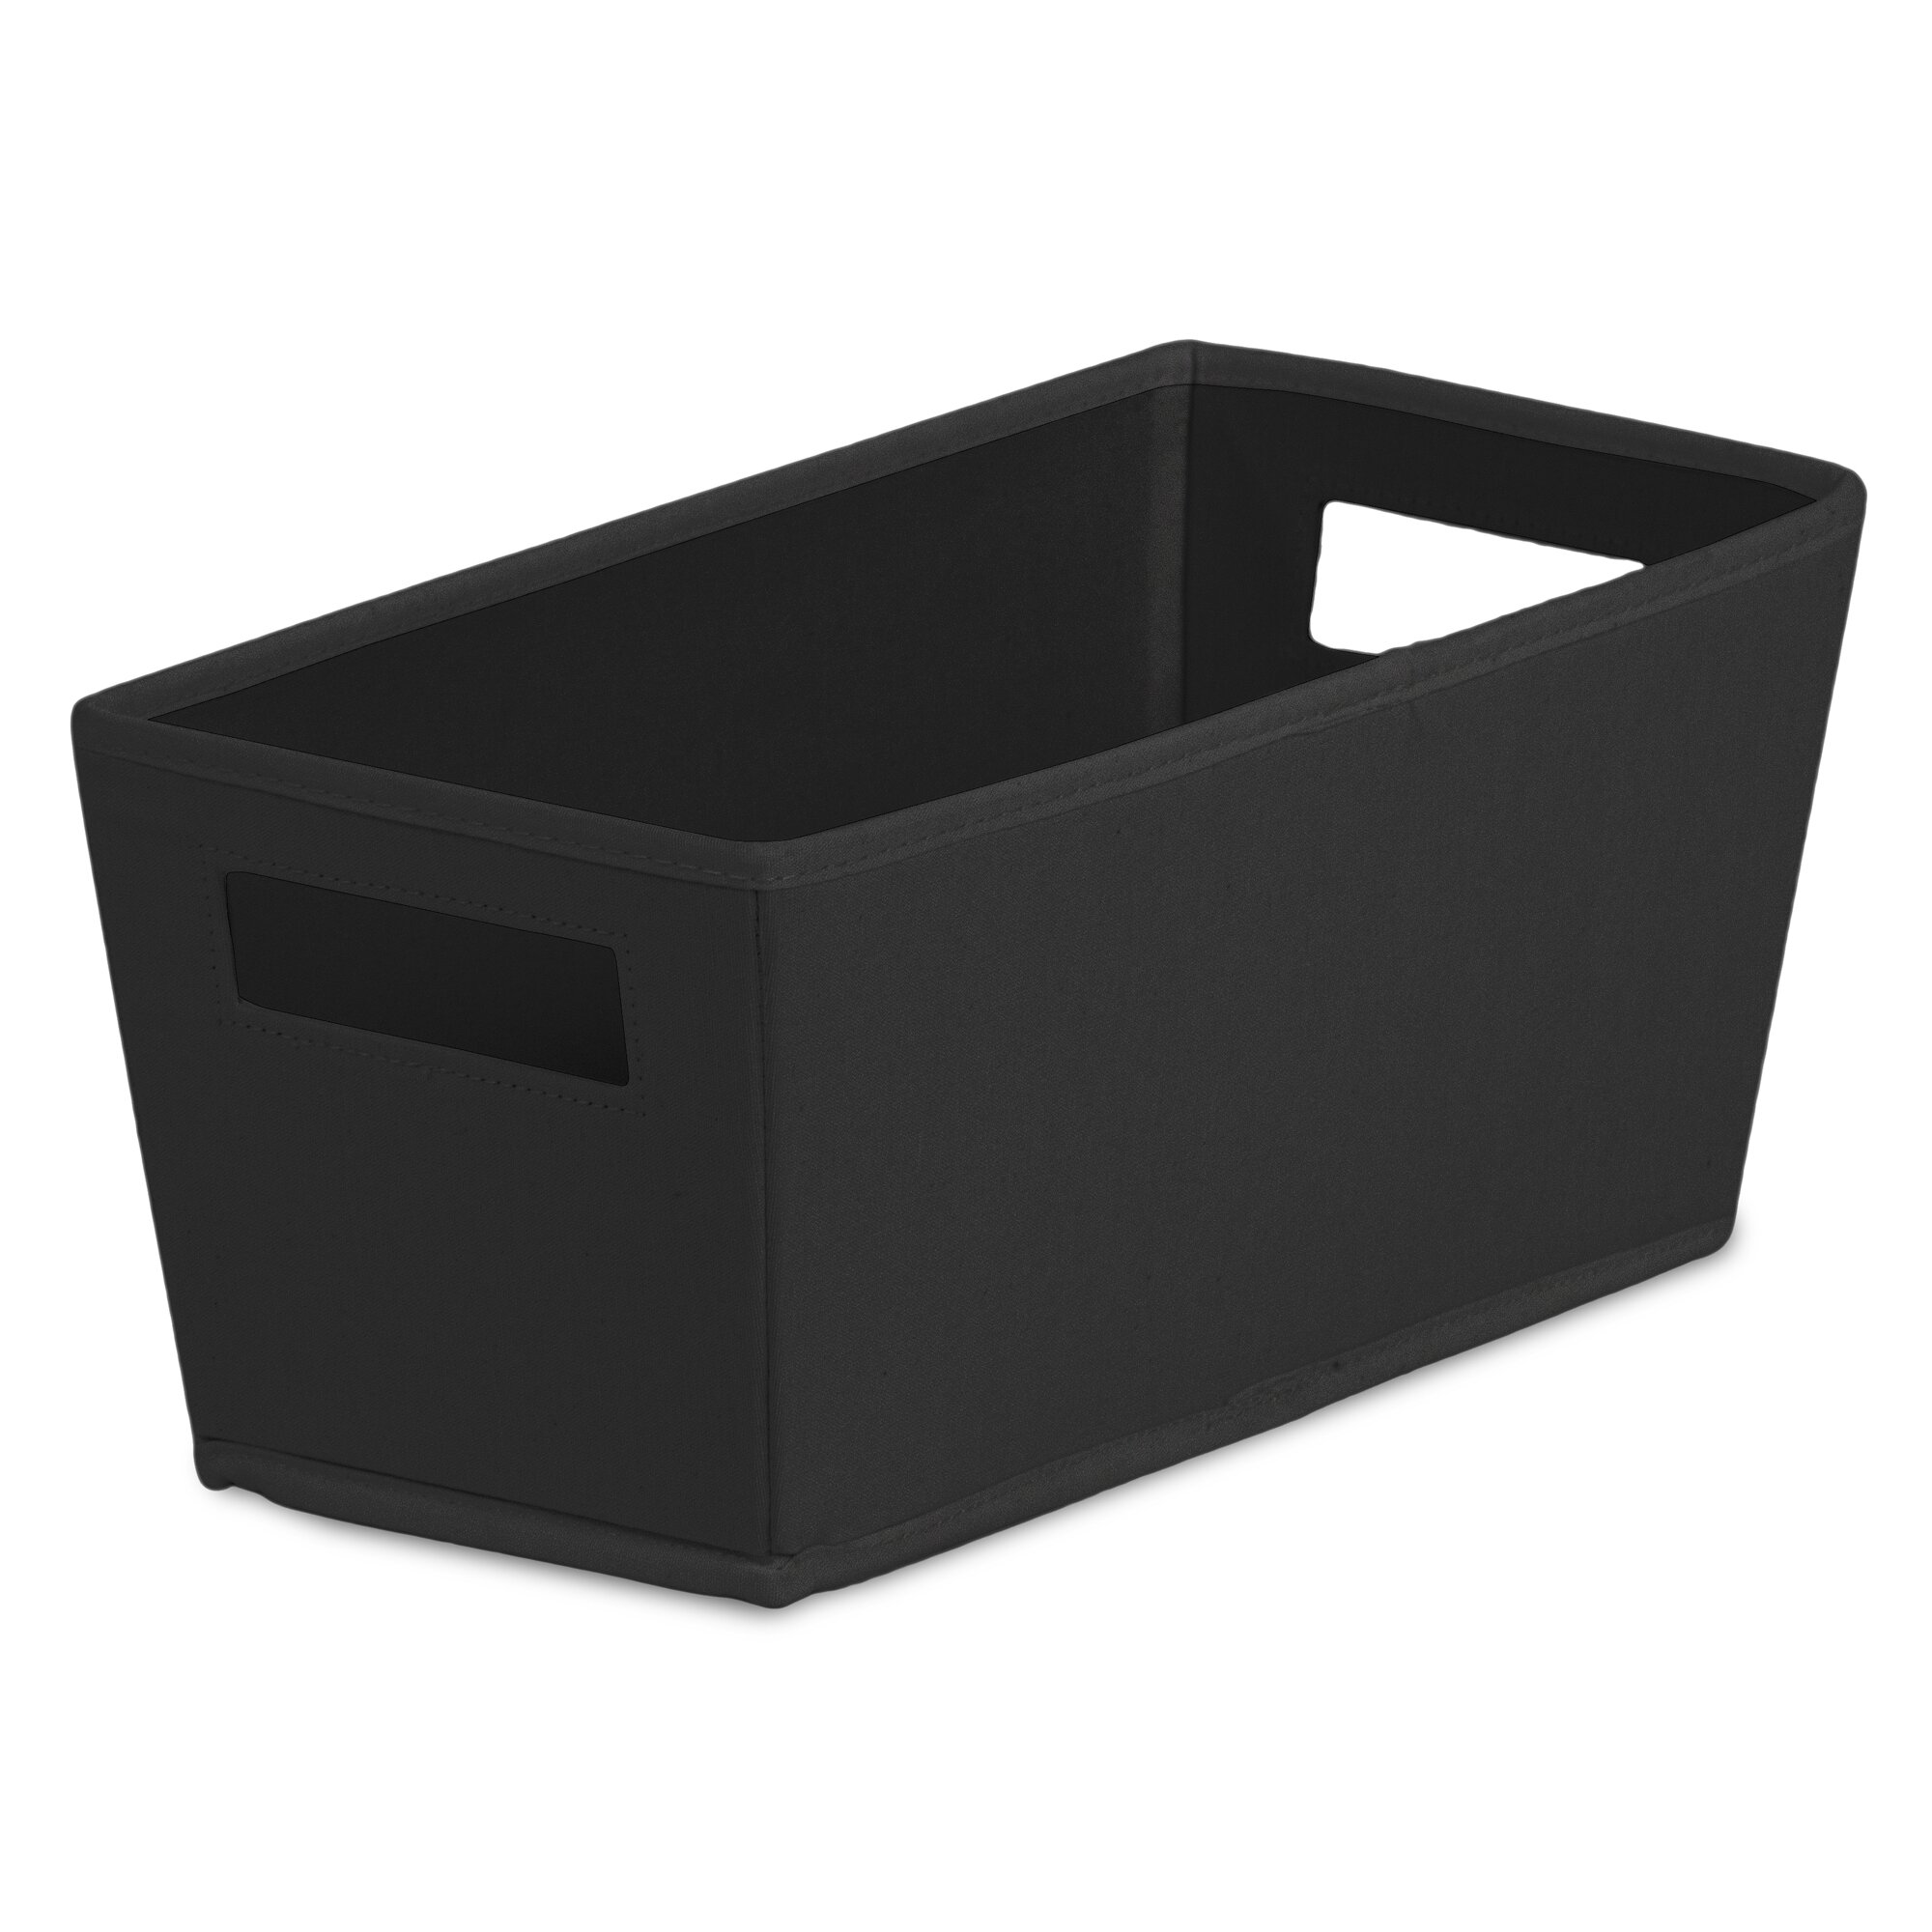 Bin fabric quarter storage bin reviews wayfair for Fabric storage